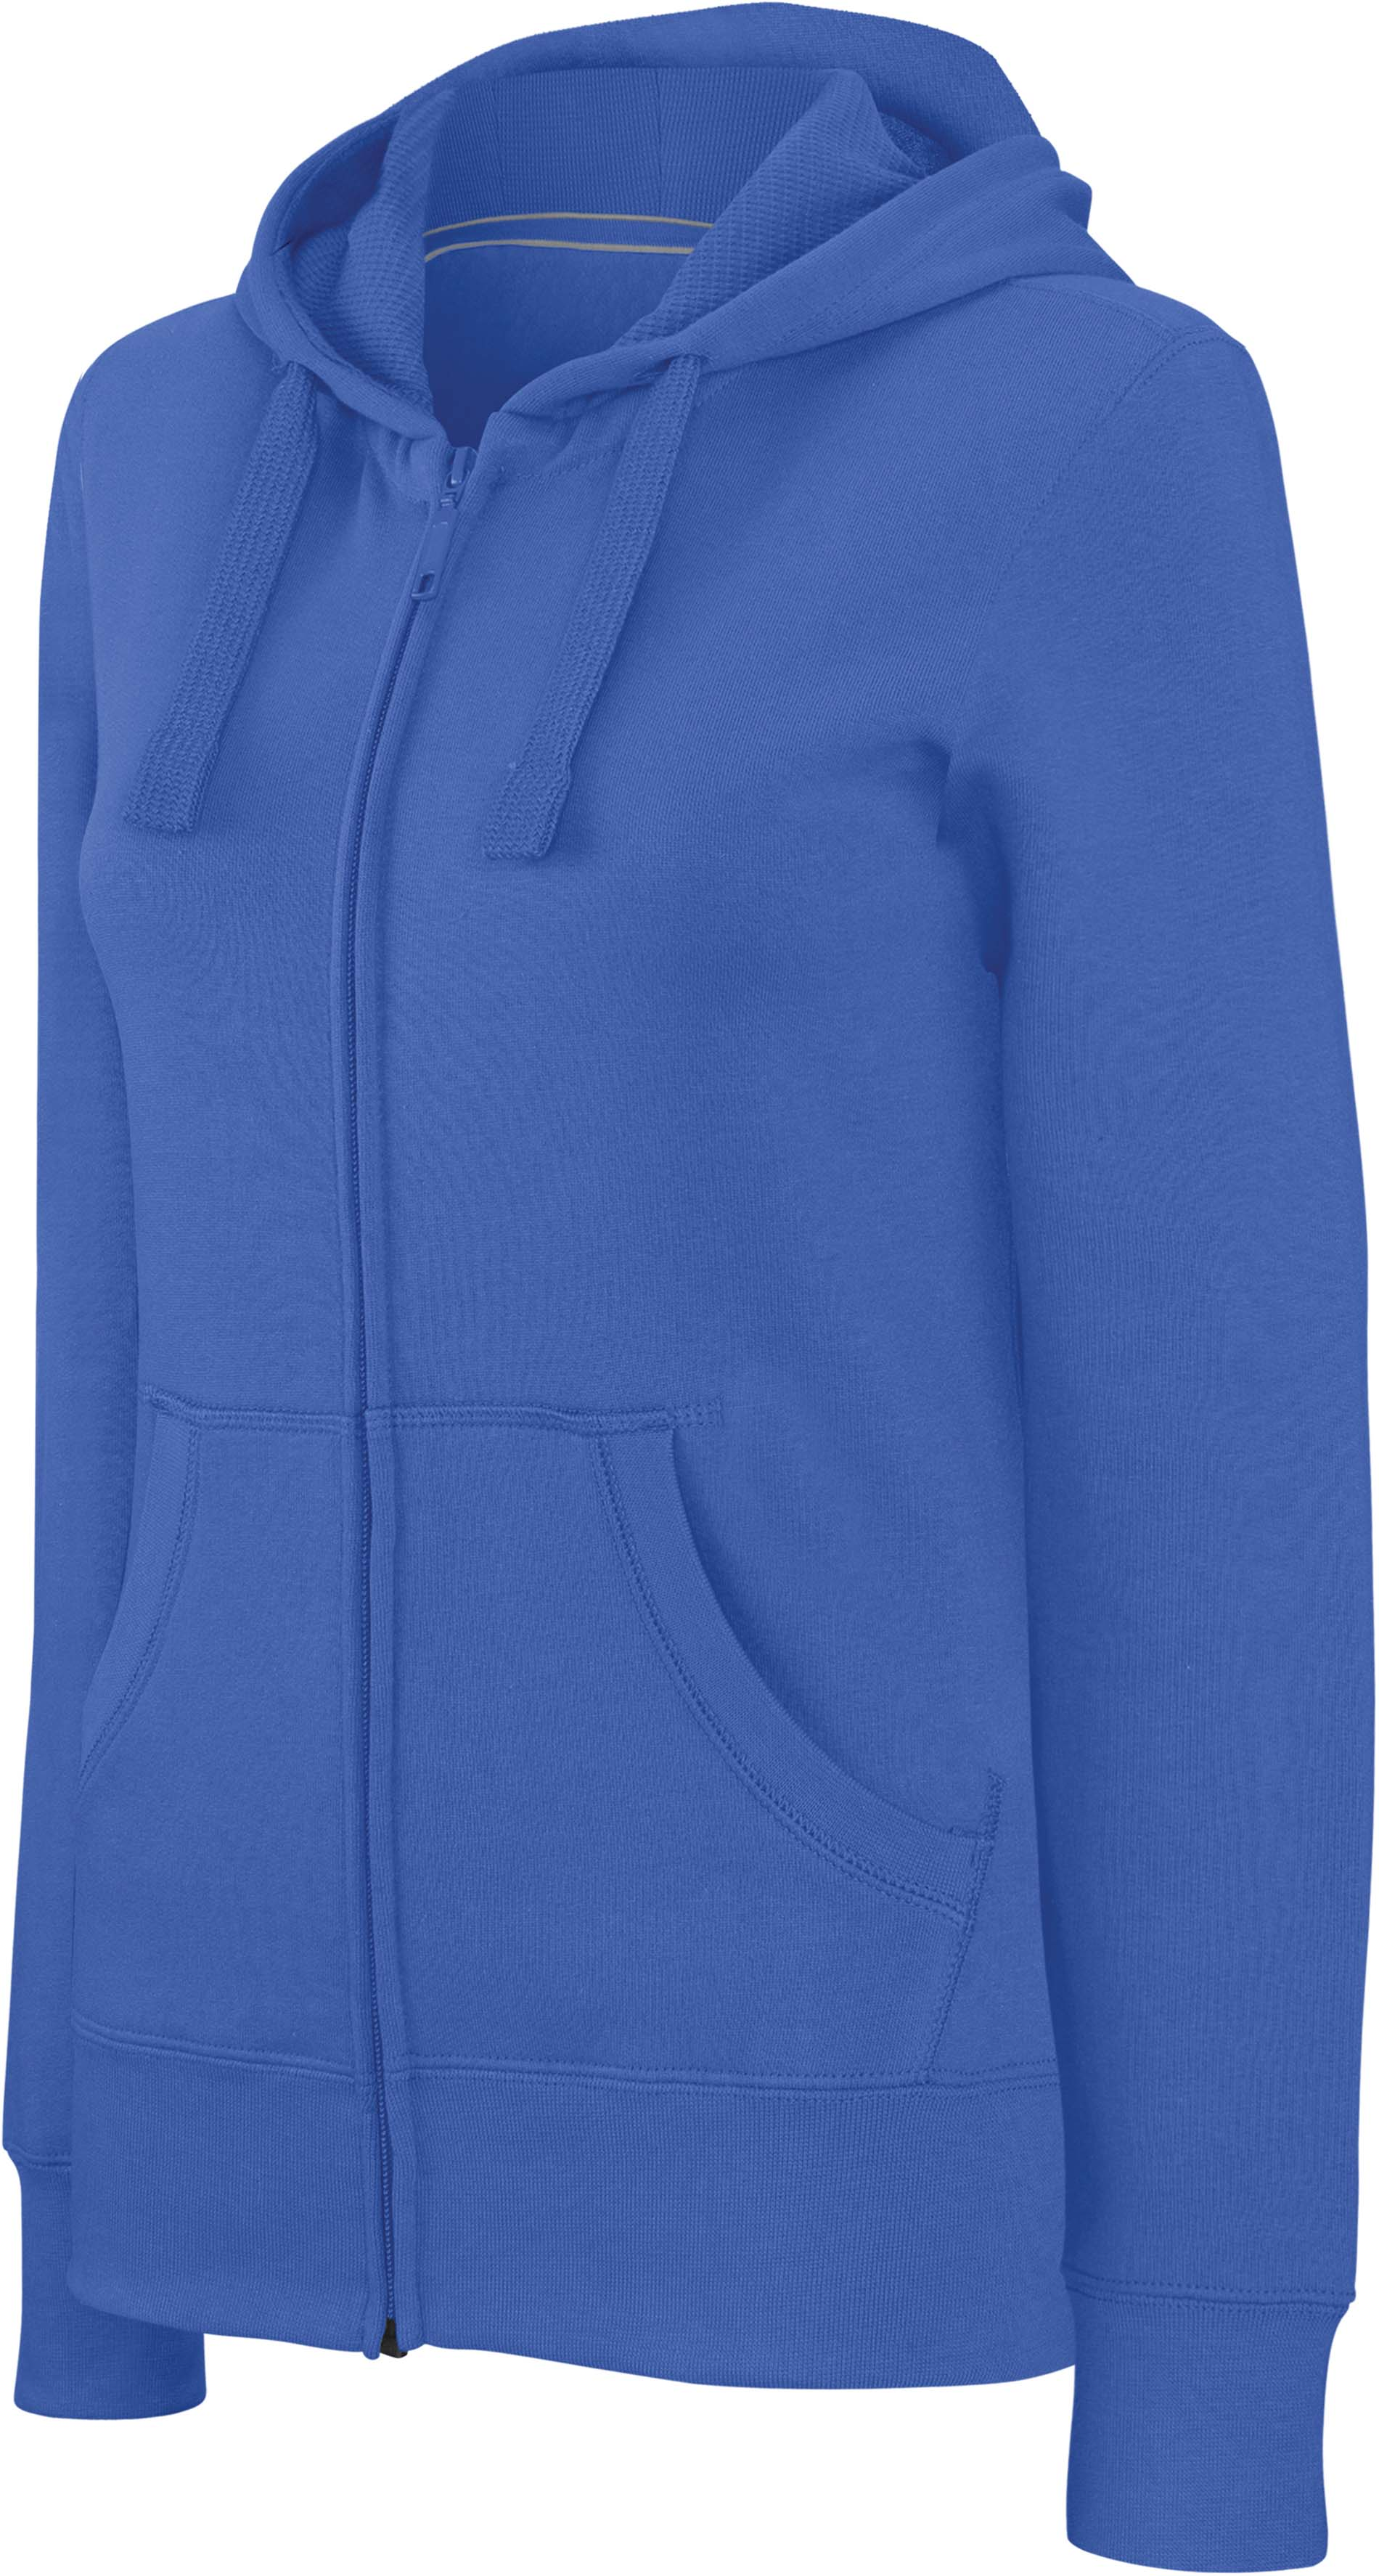 Damessweater met rits en capuchon light royal blue s